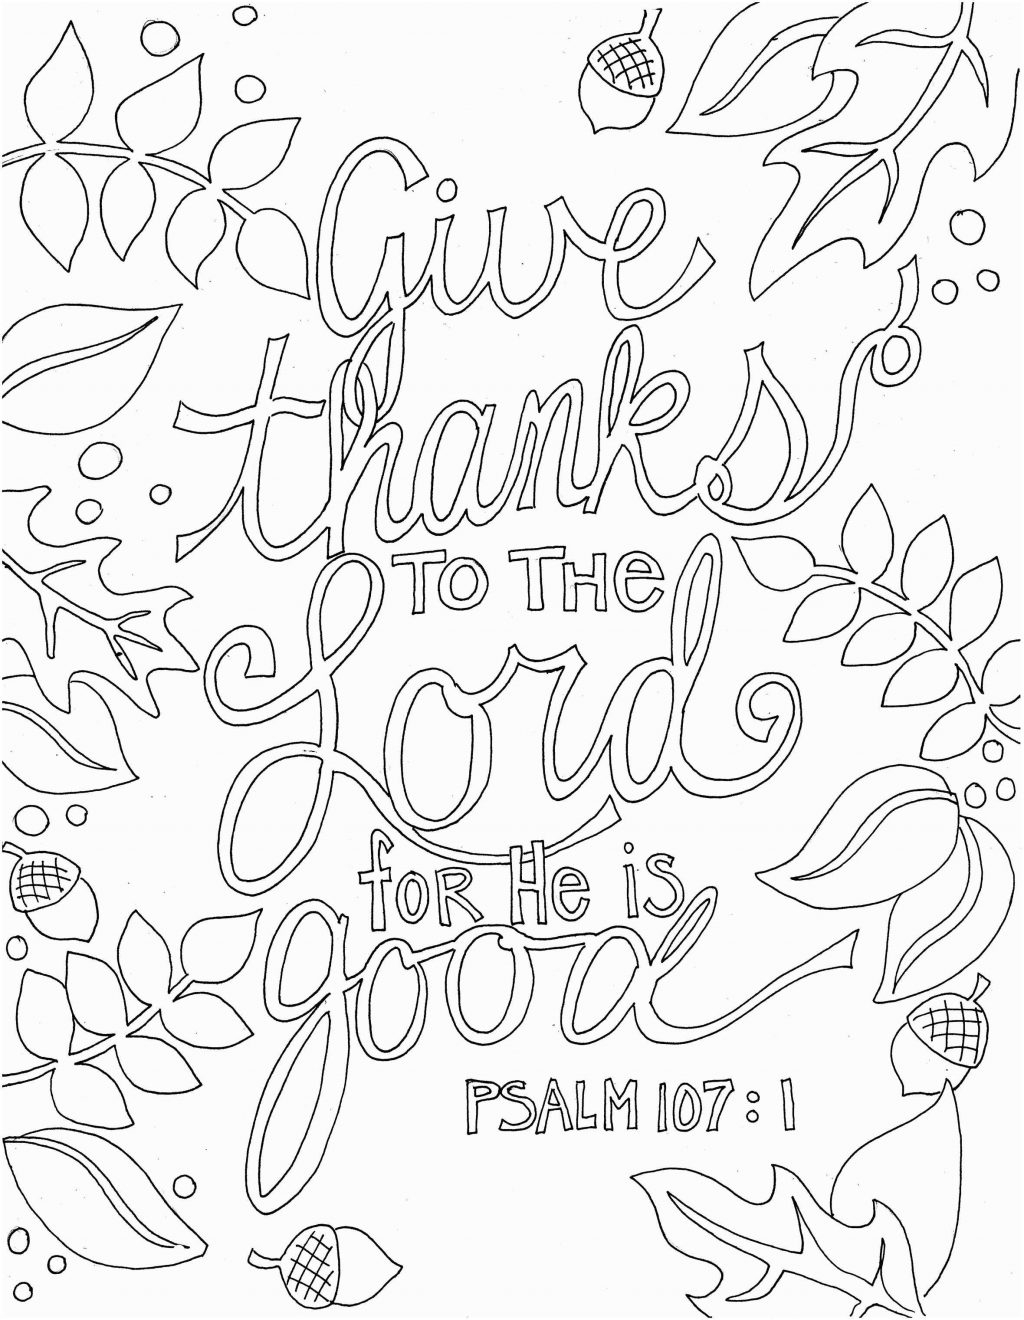 Coloring Pages ~ Free Printable Sunday School Coloring Pages Bible - Free Printable Sunday School Coloring Pages